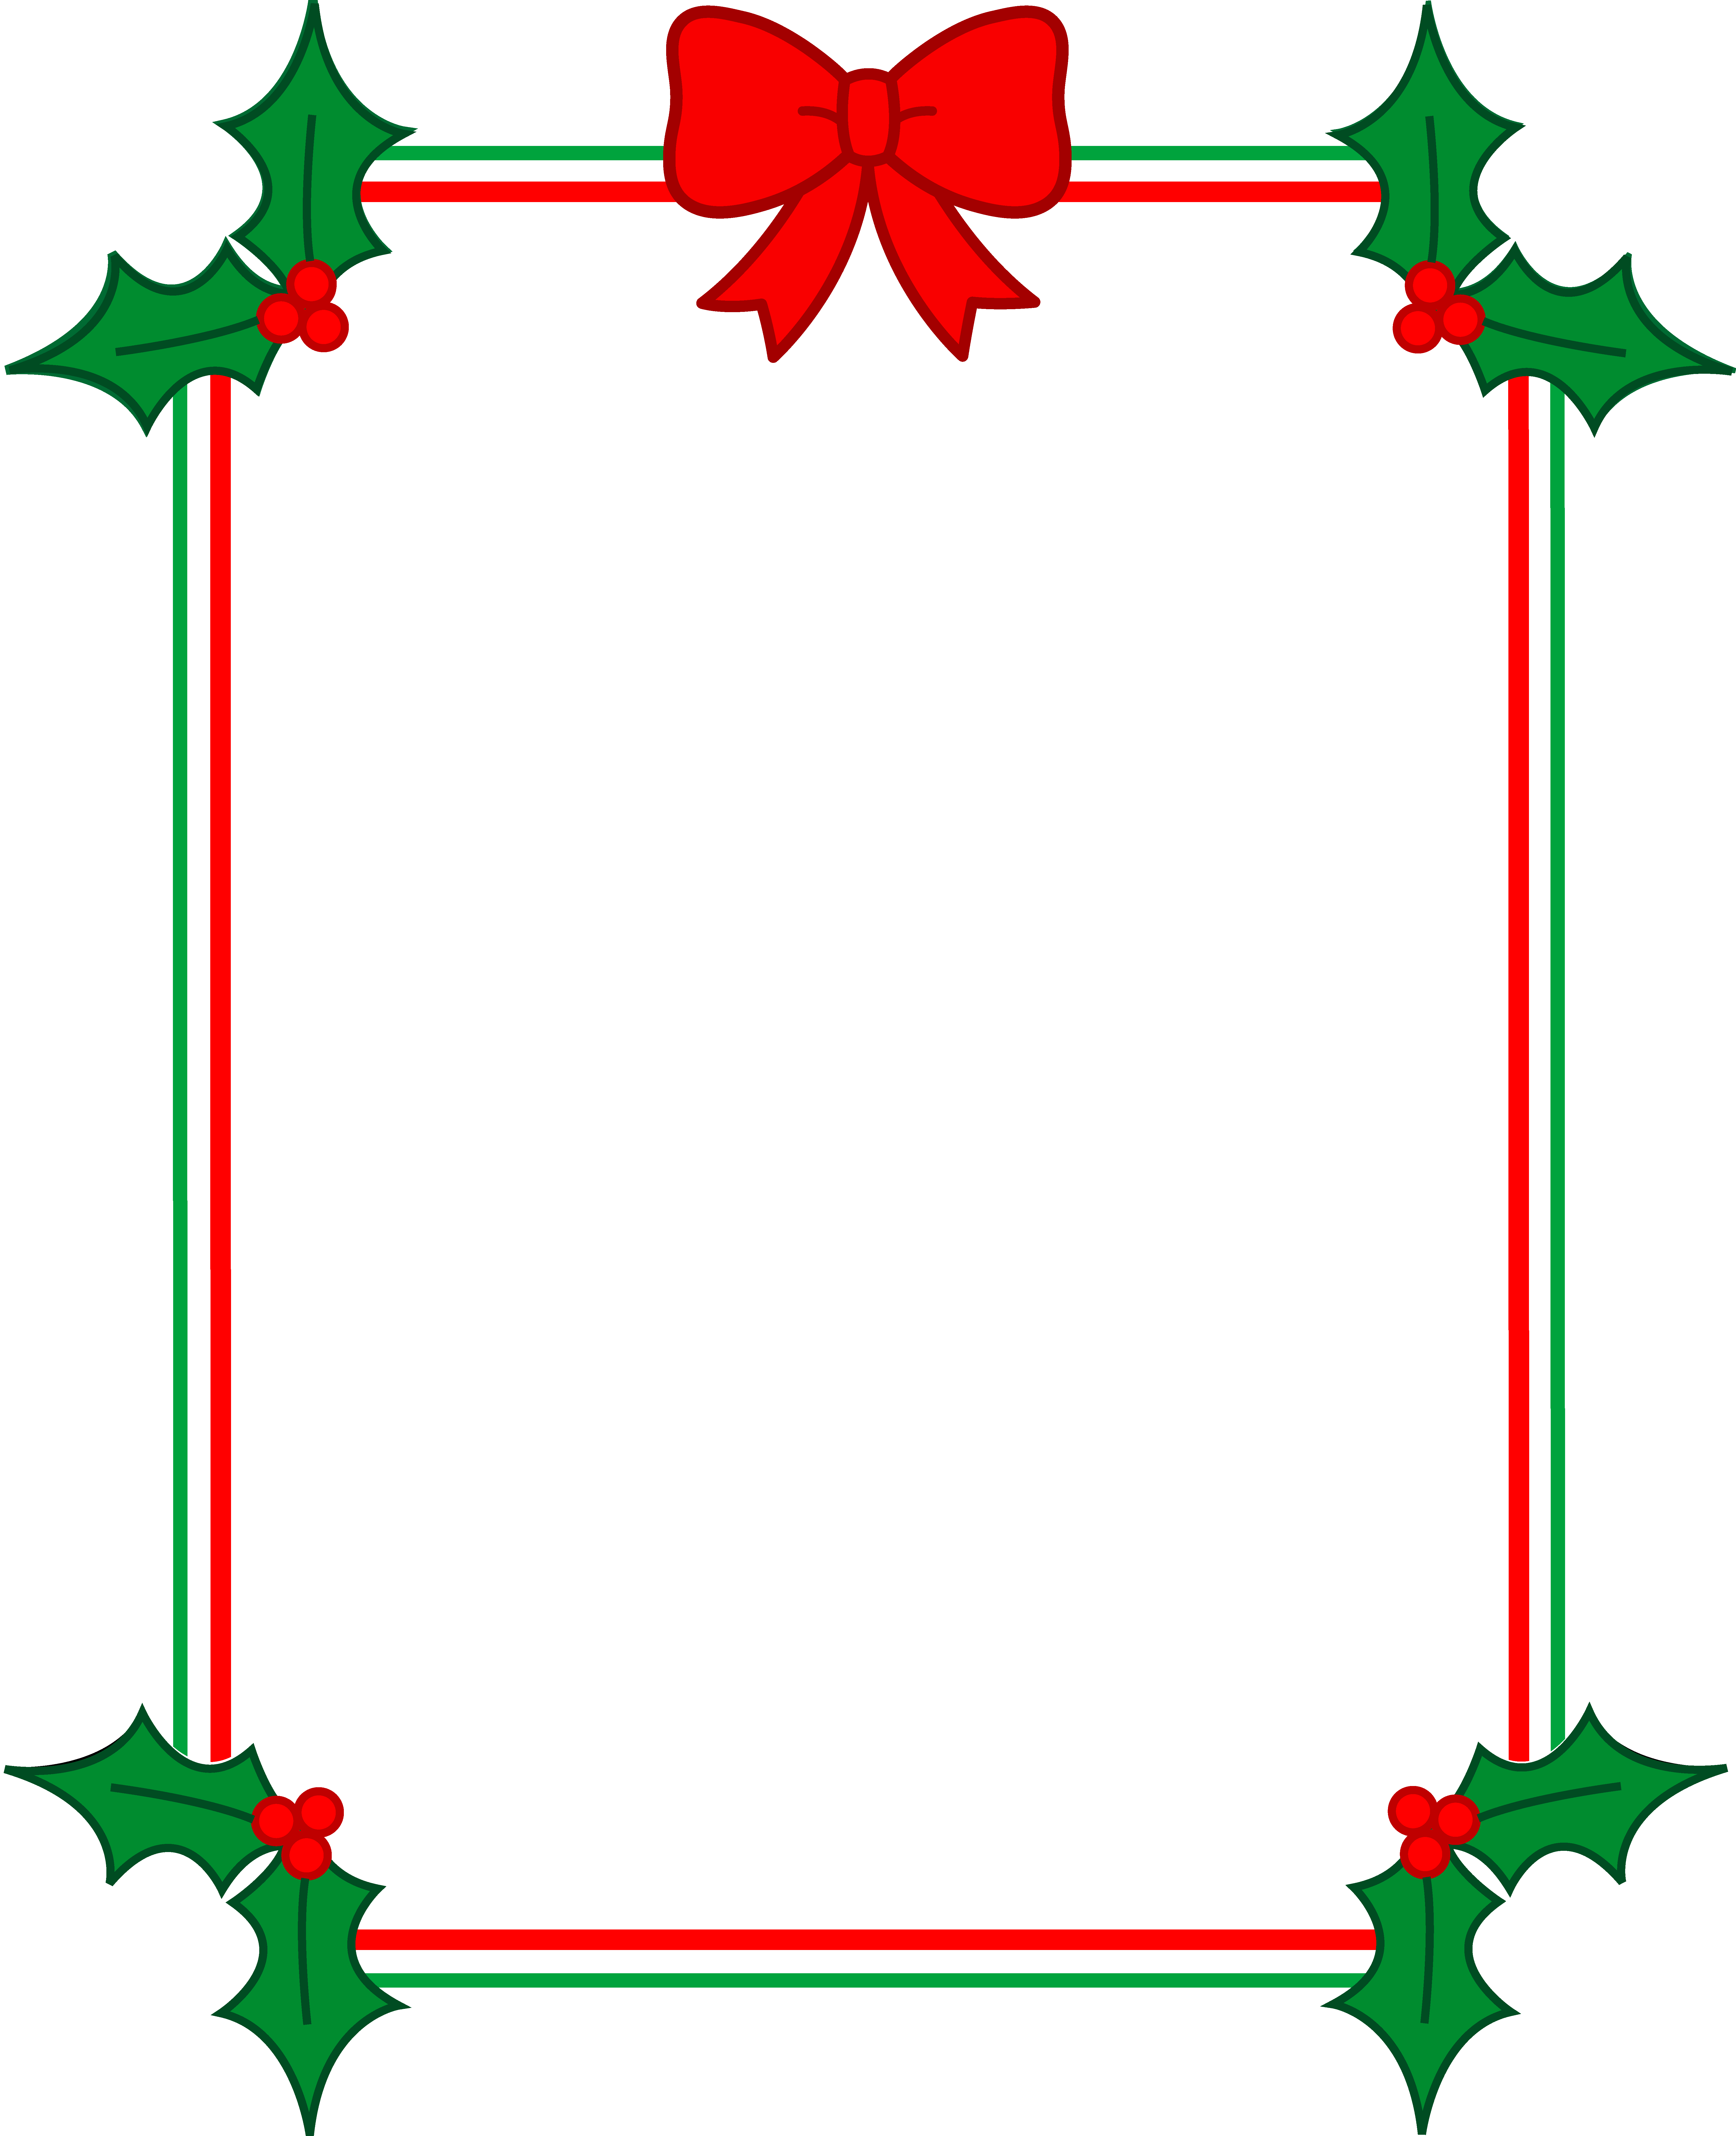 graphic transparent library Christmas Border With Holly and Ribbon